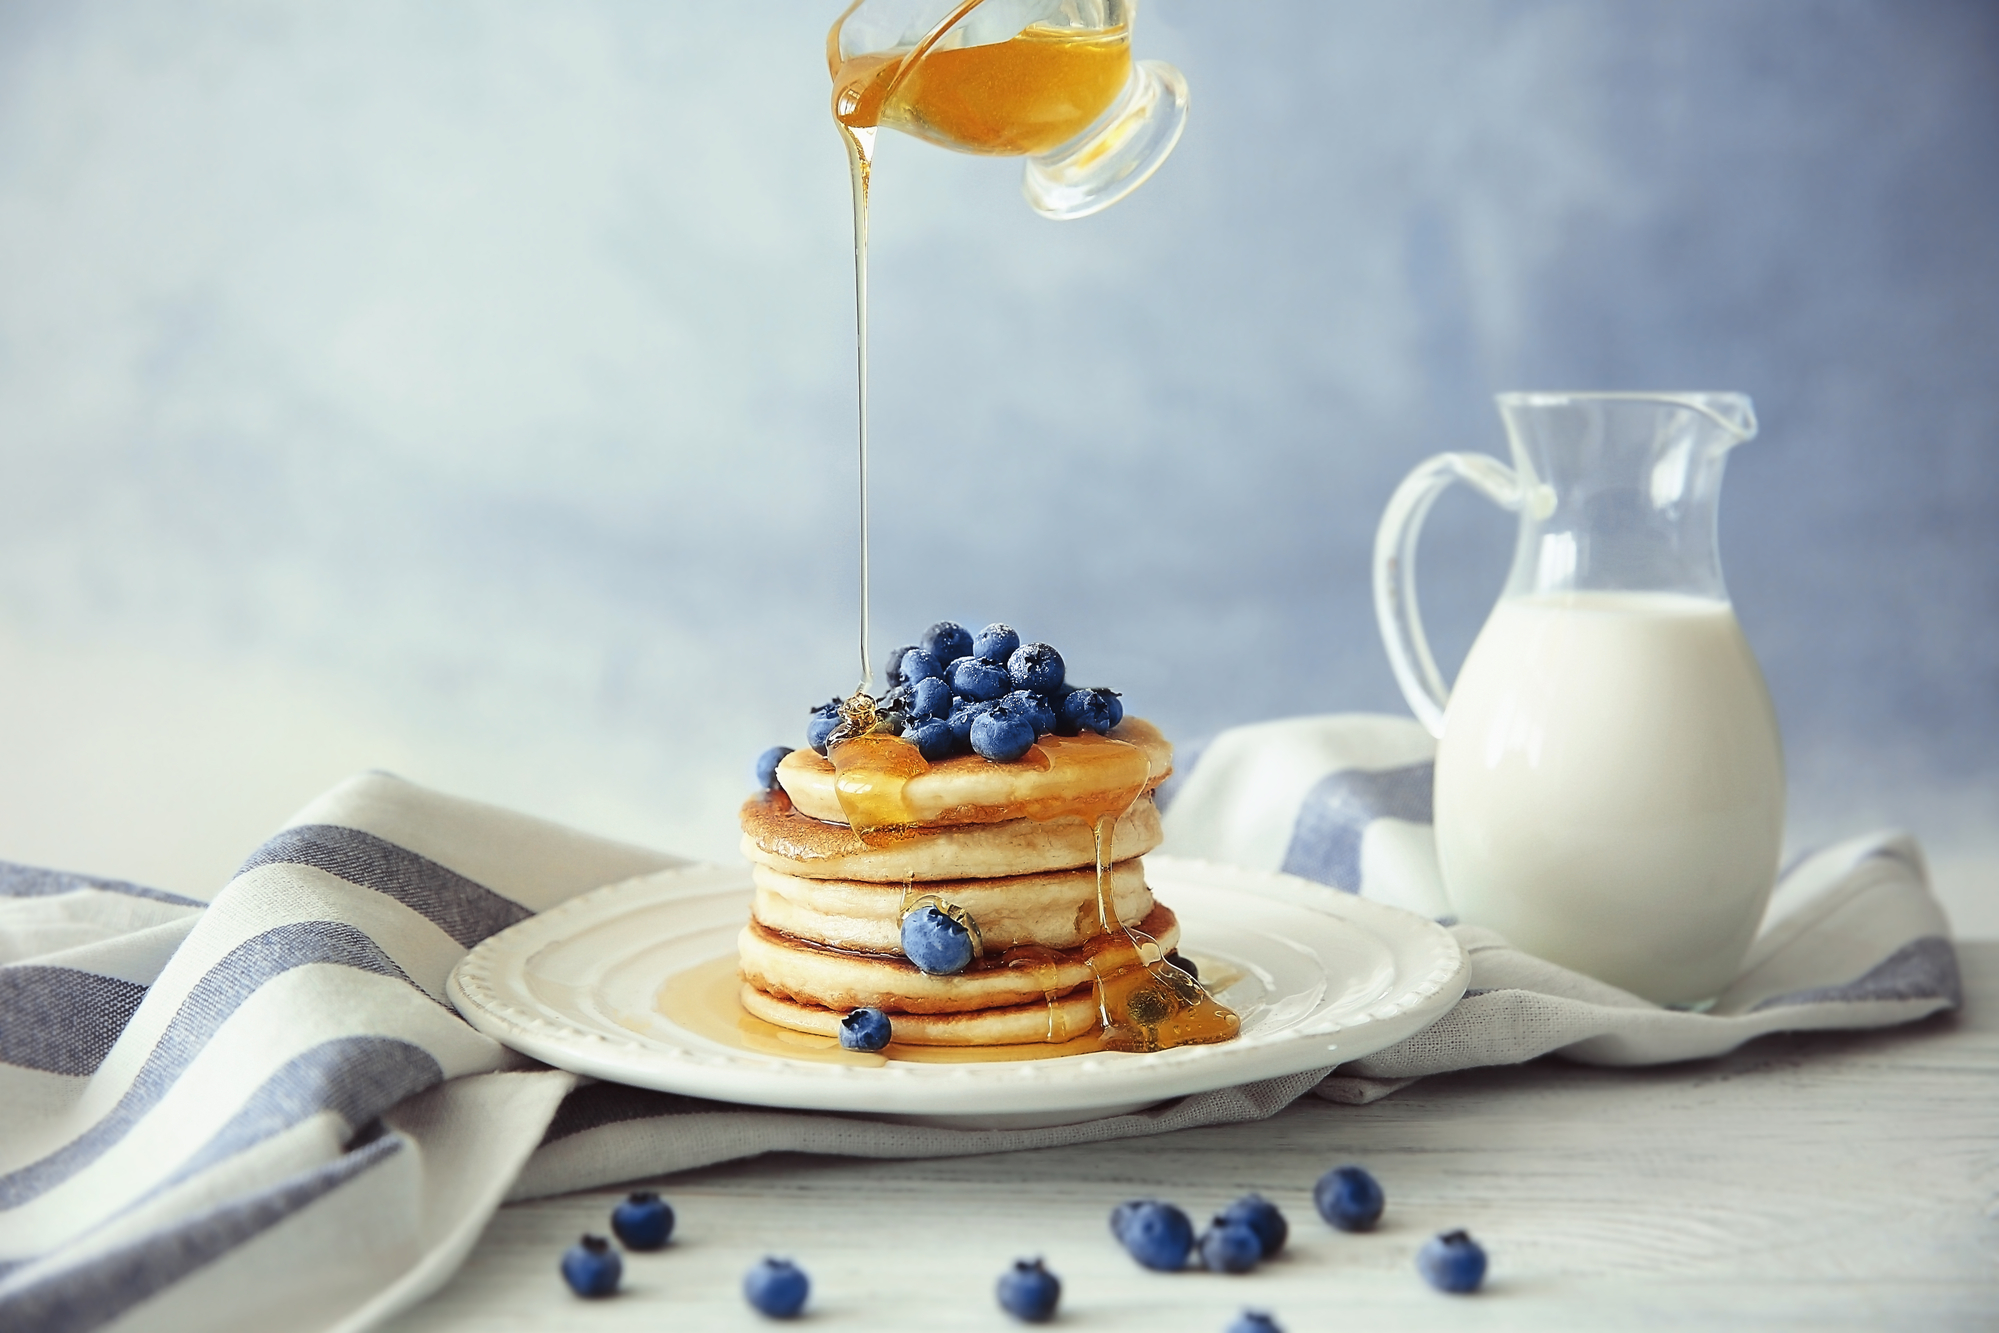 Pouring honey from gravy boat on stack of delicious pancakes with blueberries